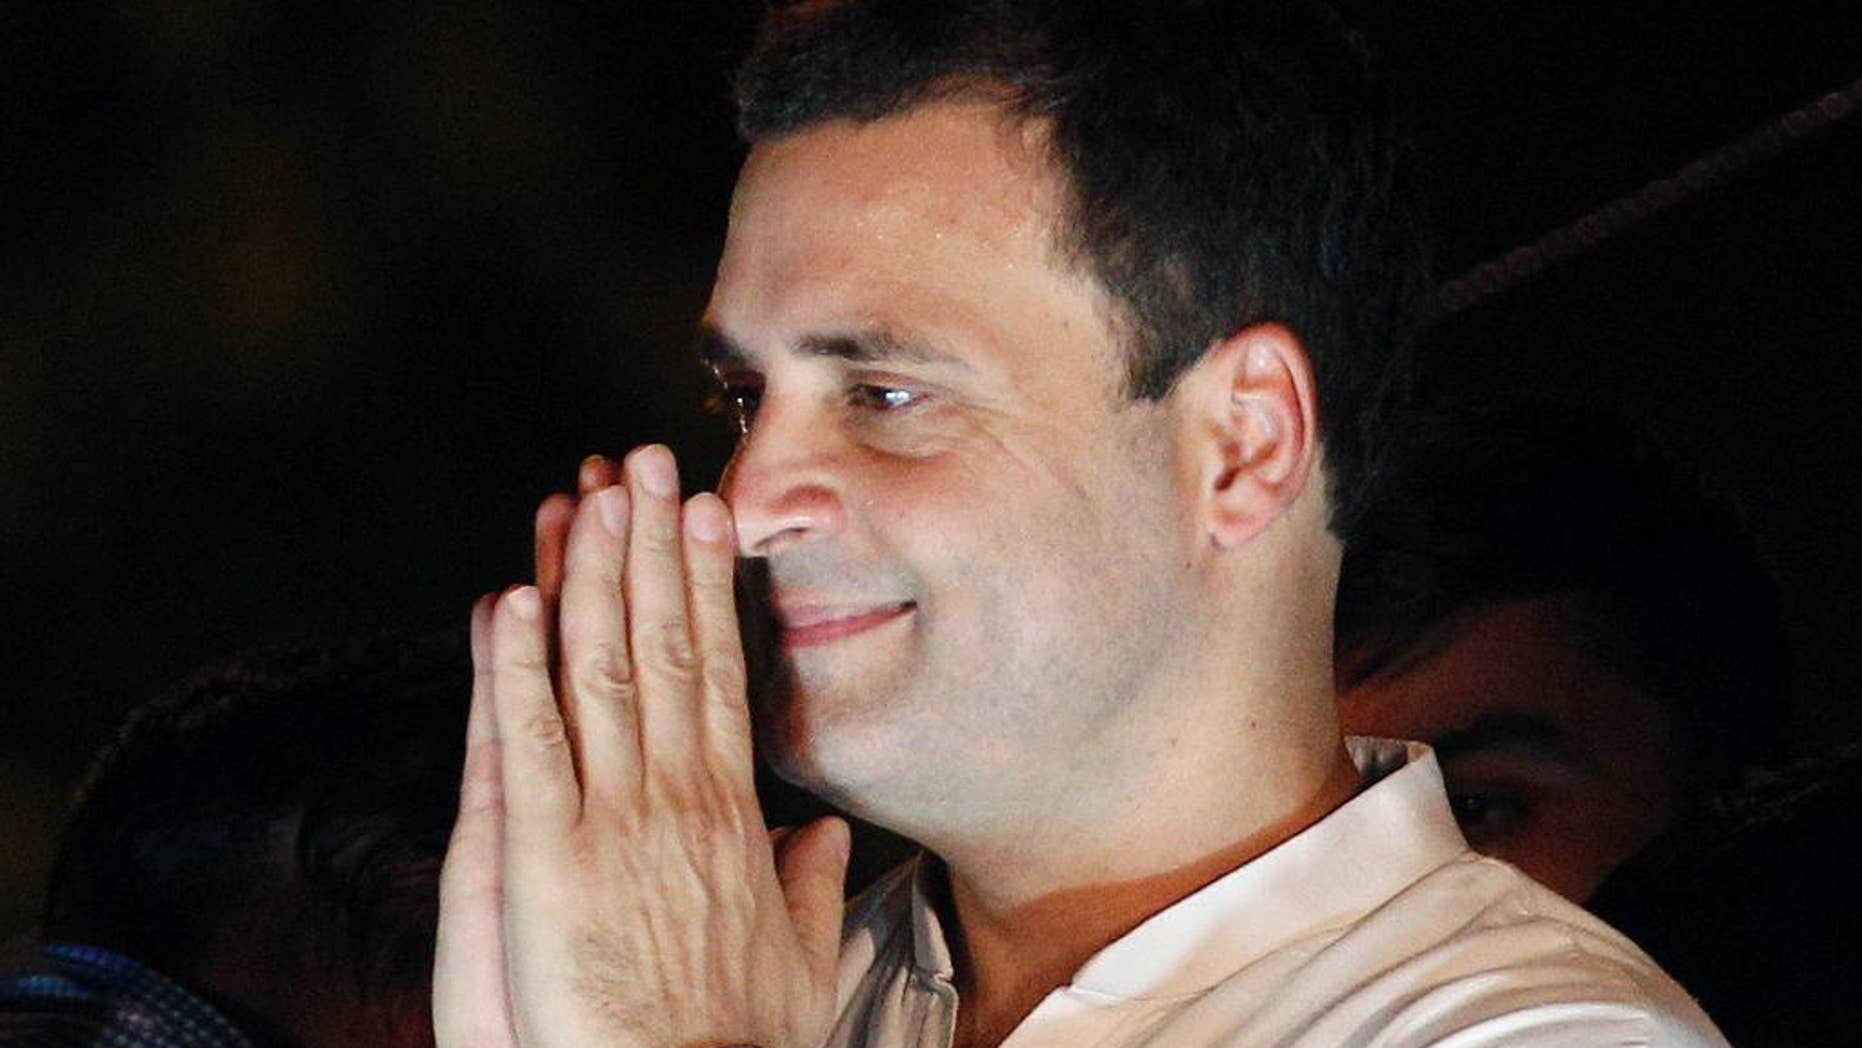 FILE - In this May 28, 2016, file photo, India's opposition Congress party vice-president Rahul Gandhi, greets his supporters during a protest rally against the Aam Aadmi Party or Common Man's Party led Delhi government and India's ruling Bharatiya Janata Party government over power cuts and water shortage in New Delhi, India. India's top court on Tuesday, July 19, 2016, has ordered a scion of India's Nehru-Gandhi family to express regret or face defamation charges for blaming the country's top Hindu nationalist organization for the 1948 assassination of independence leader Mohandas Gandhi. (AP Photo/Altaf Qadri, File)